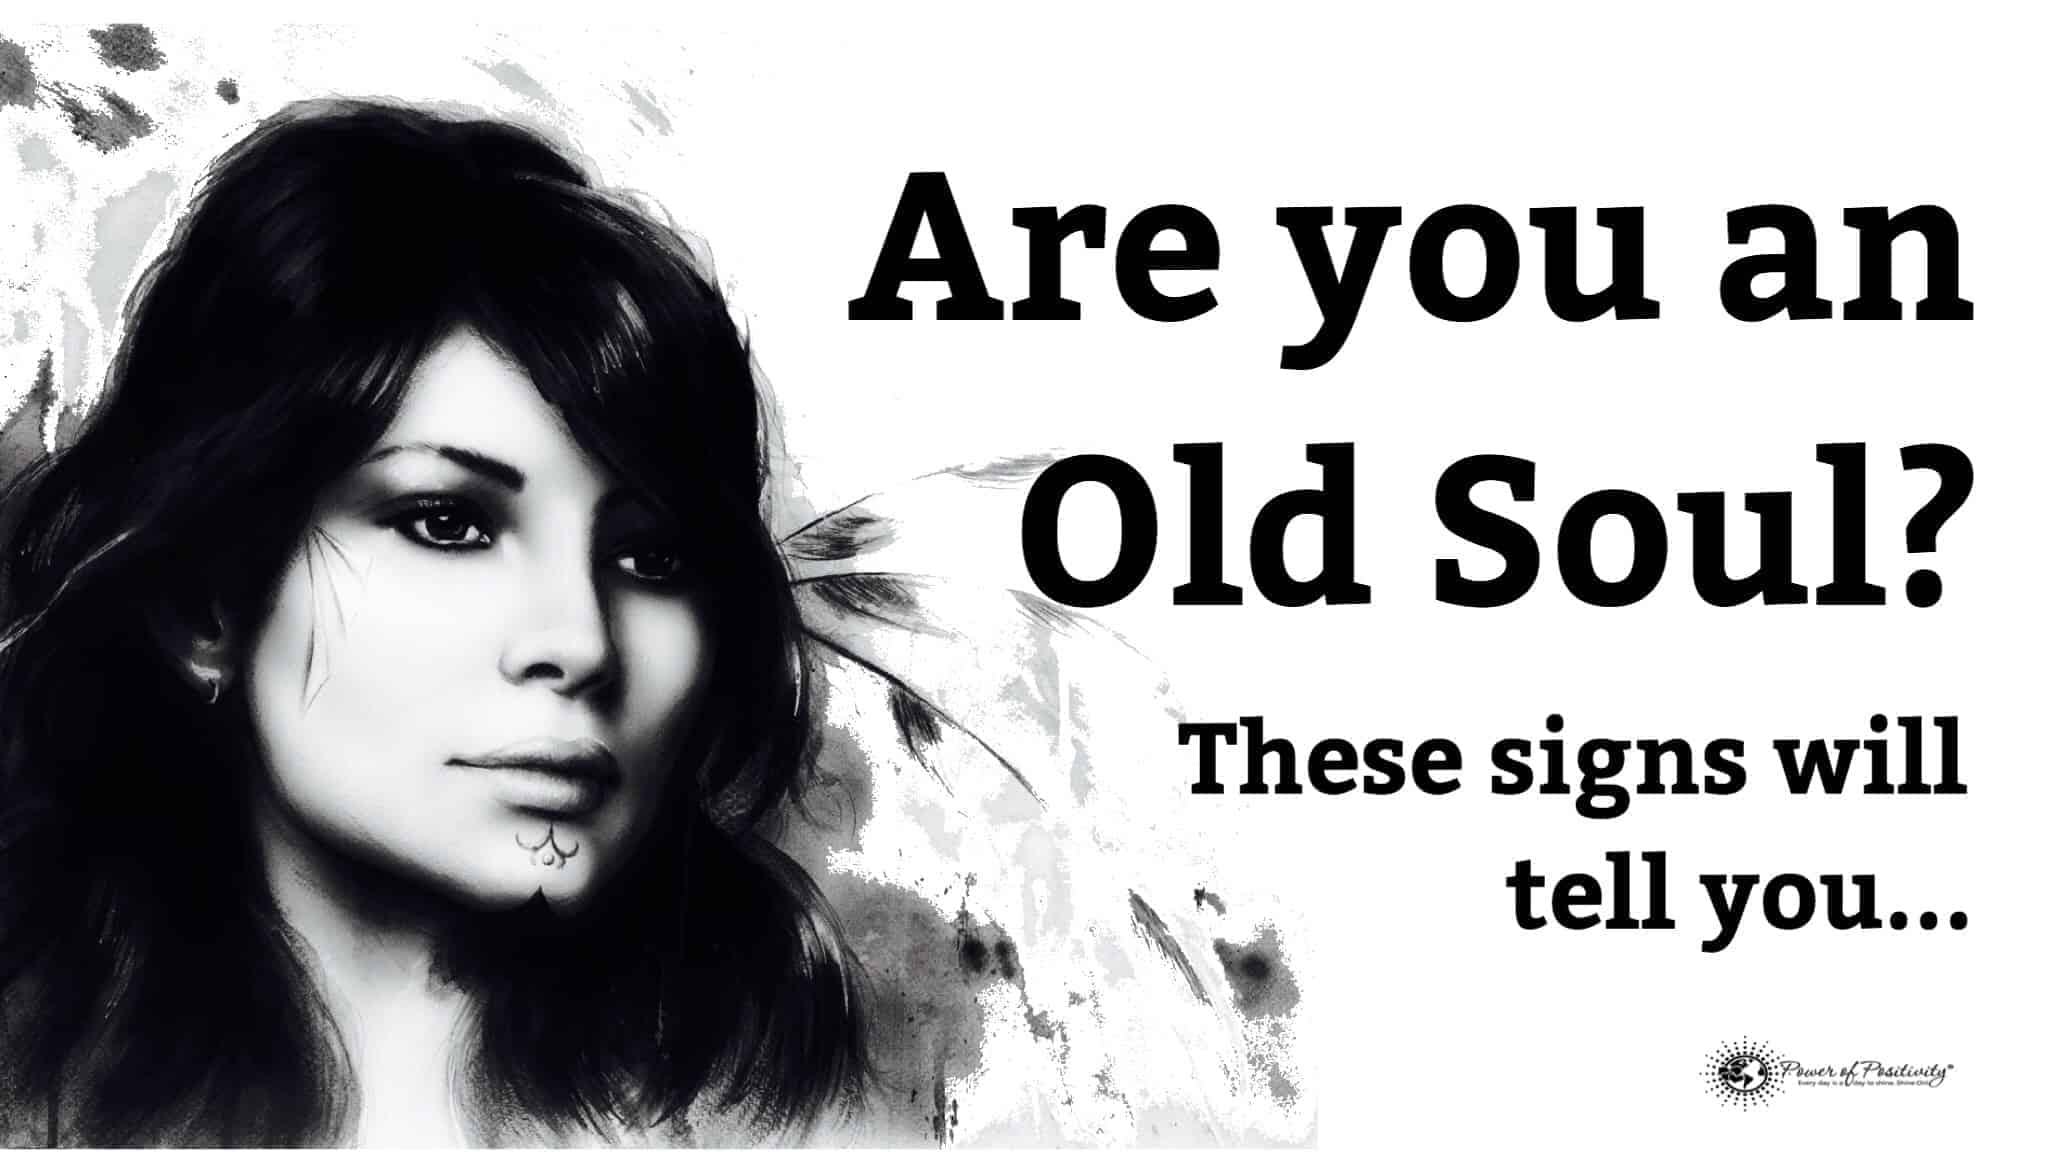 10 signs you're an old soul